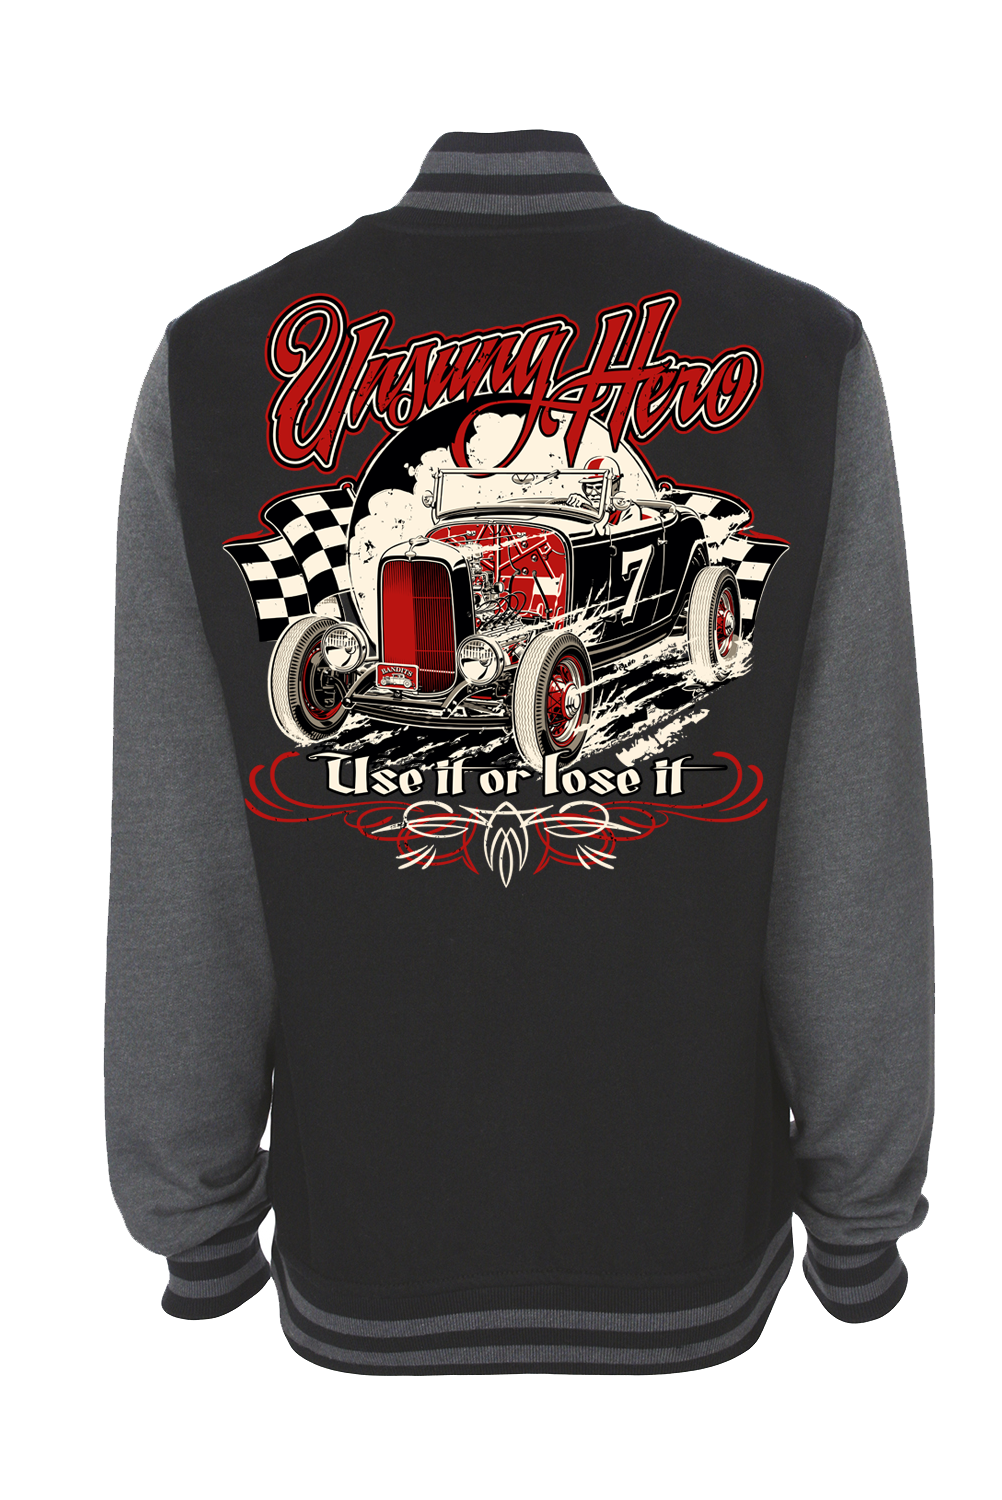 """UNSUNG HERO """"Use it or lose it"""" VARSITY JACKET UNISEX by Ger """"Dutch Courage"""" Peters artwork"""